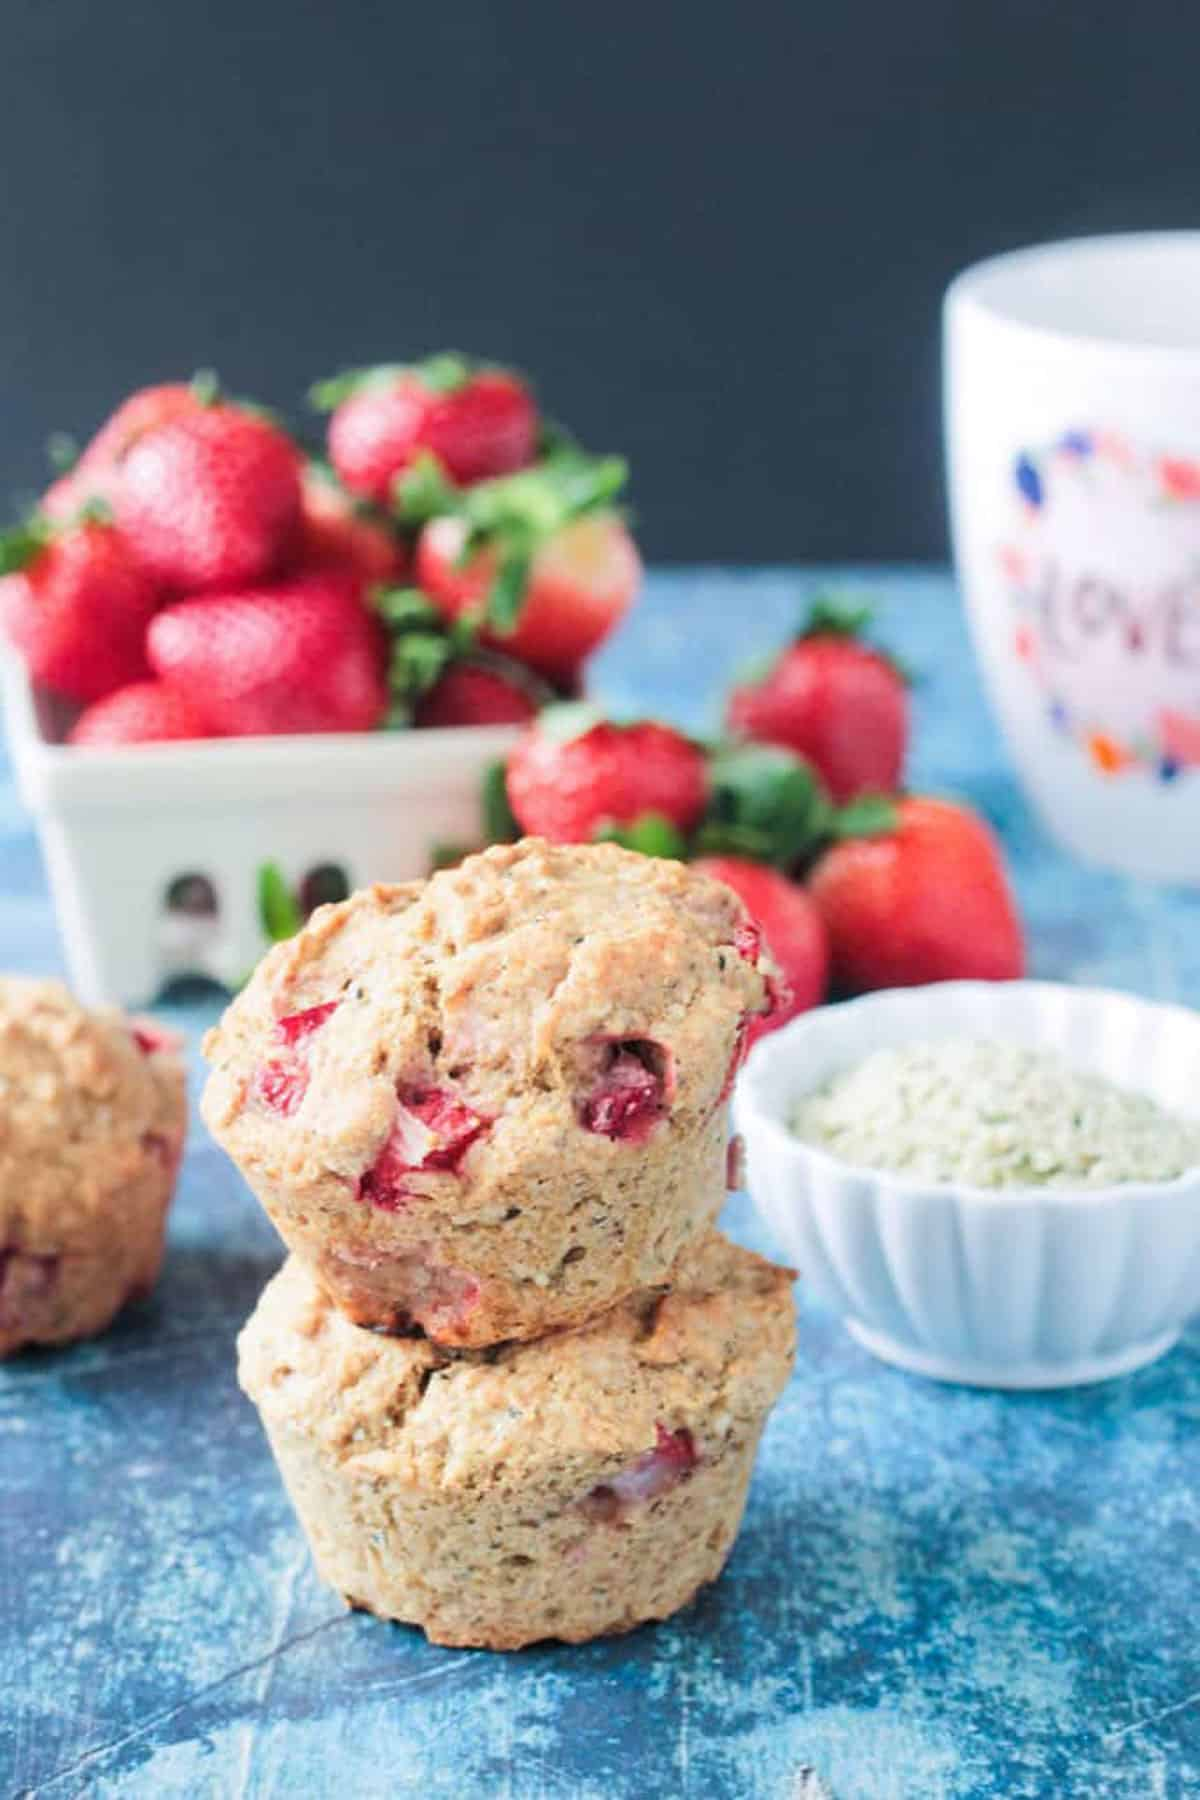 Stack of two strawberry muffins in front of a bowl of fresh strawberries.